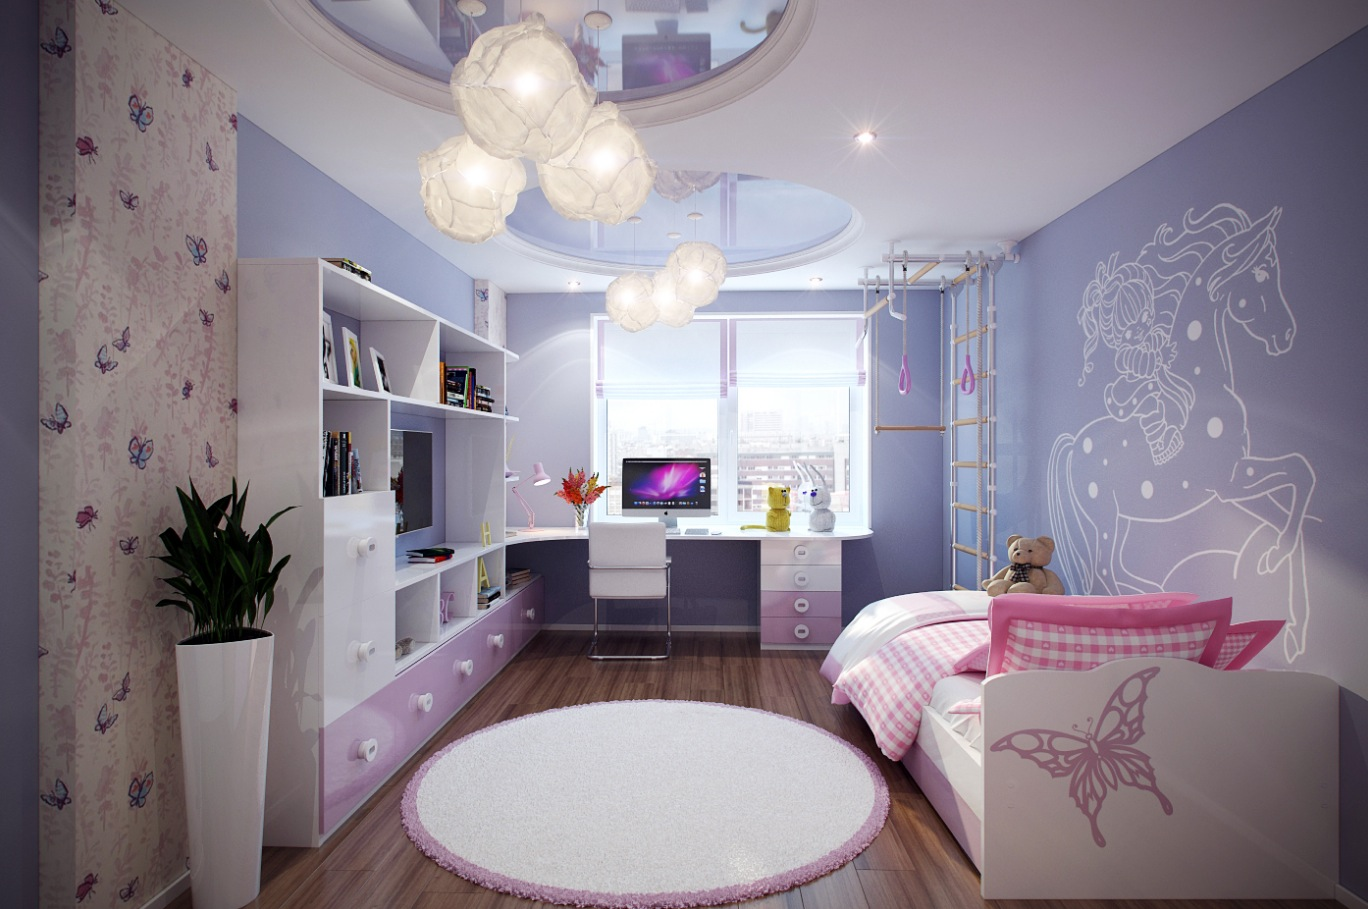 Casting color over kids rooms for Interior designs for kids